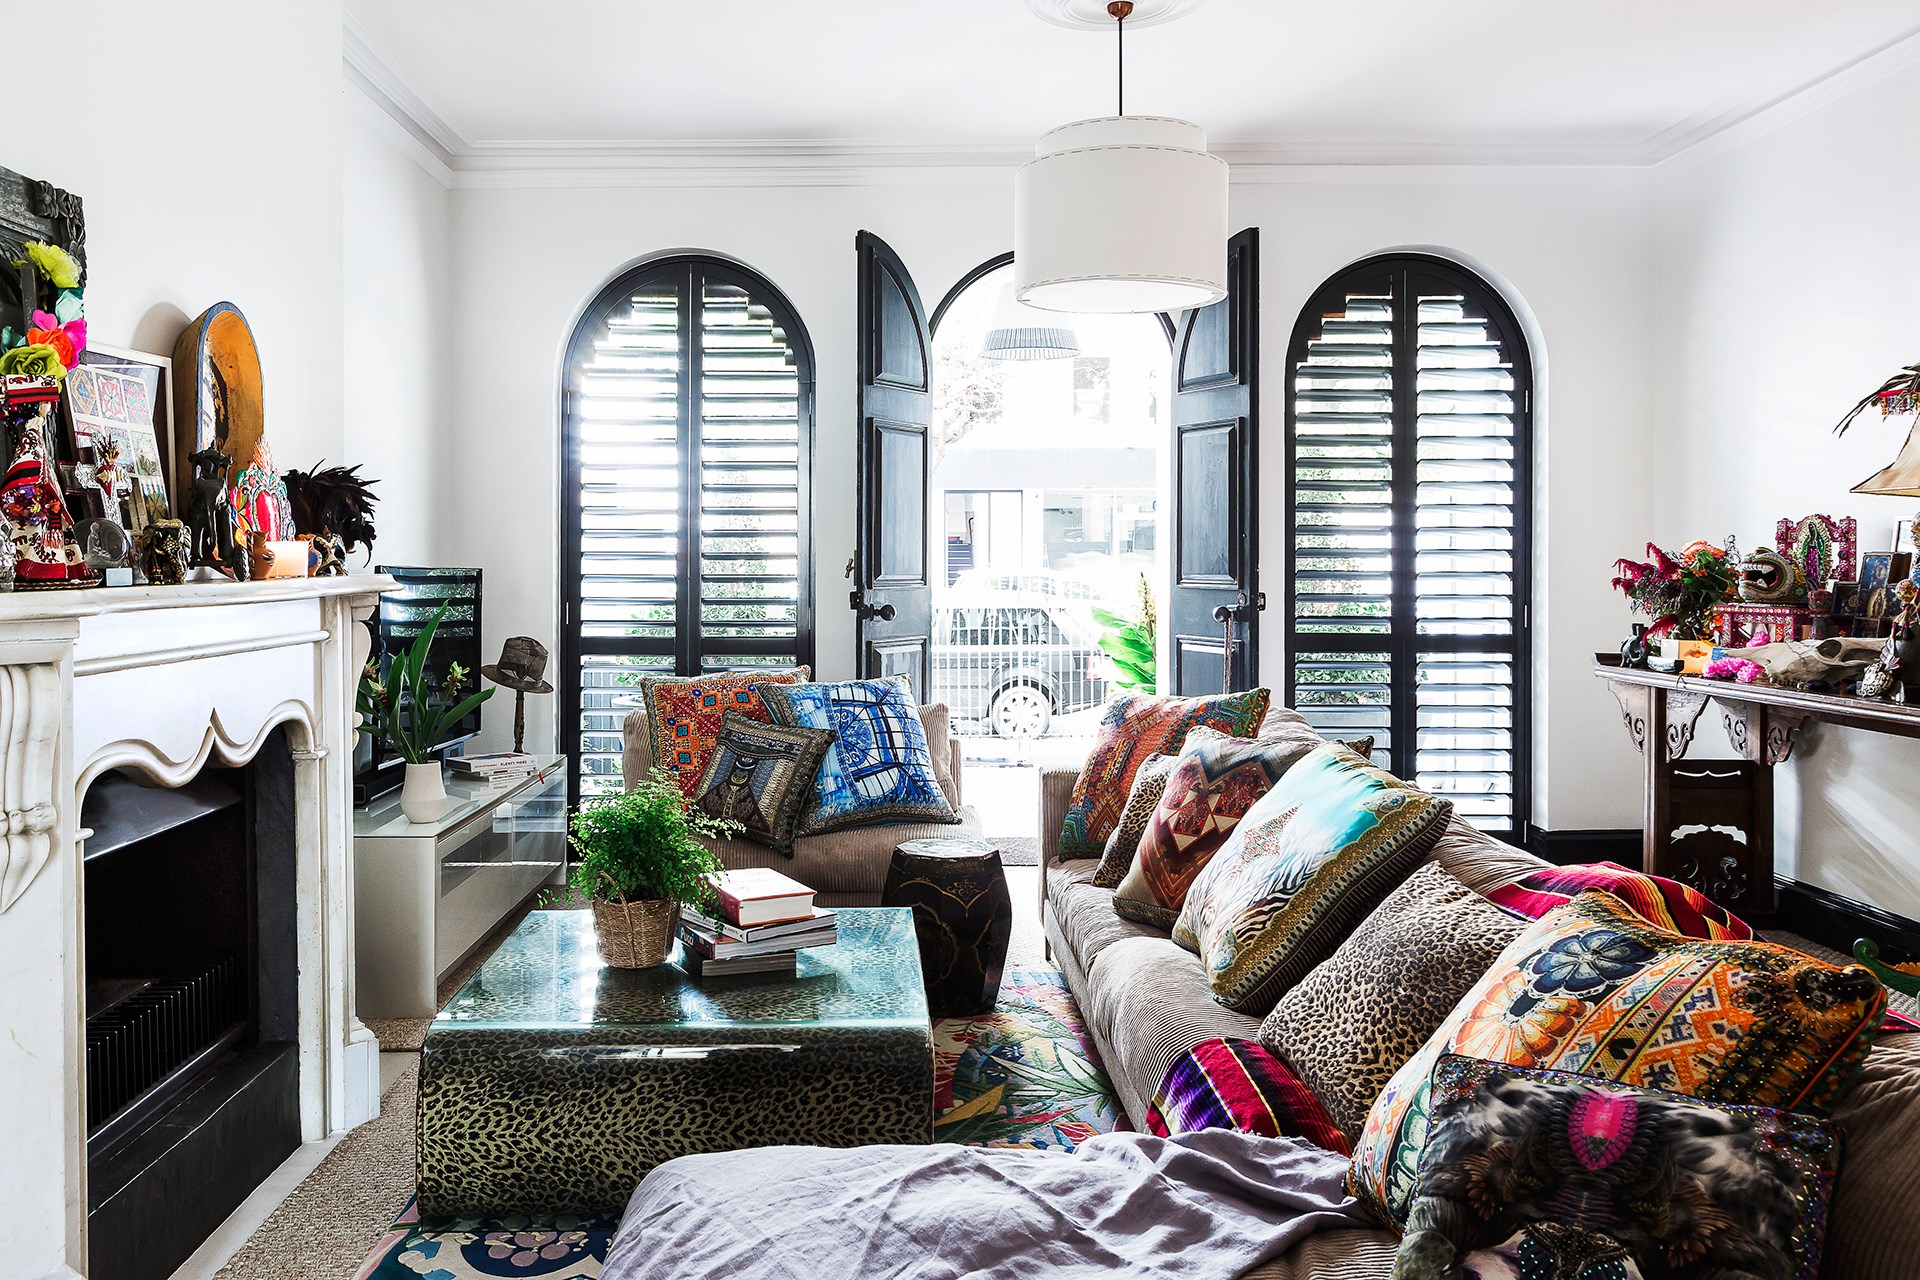 Fashion designer [Camilla Franks](http://www.homestolove.com.au/gallery-the-eclectic-home-of-designer-camilla-franks-2355) likes to crowd her sofa with scatter cushions in clashing prints. Photo: Maree Homer / *Australian House & Garden*